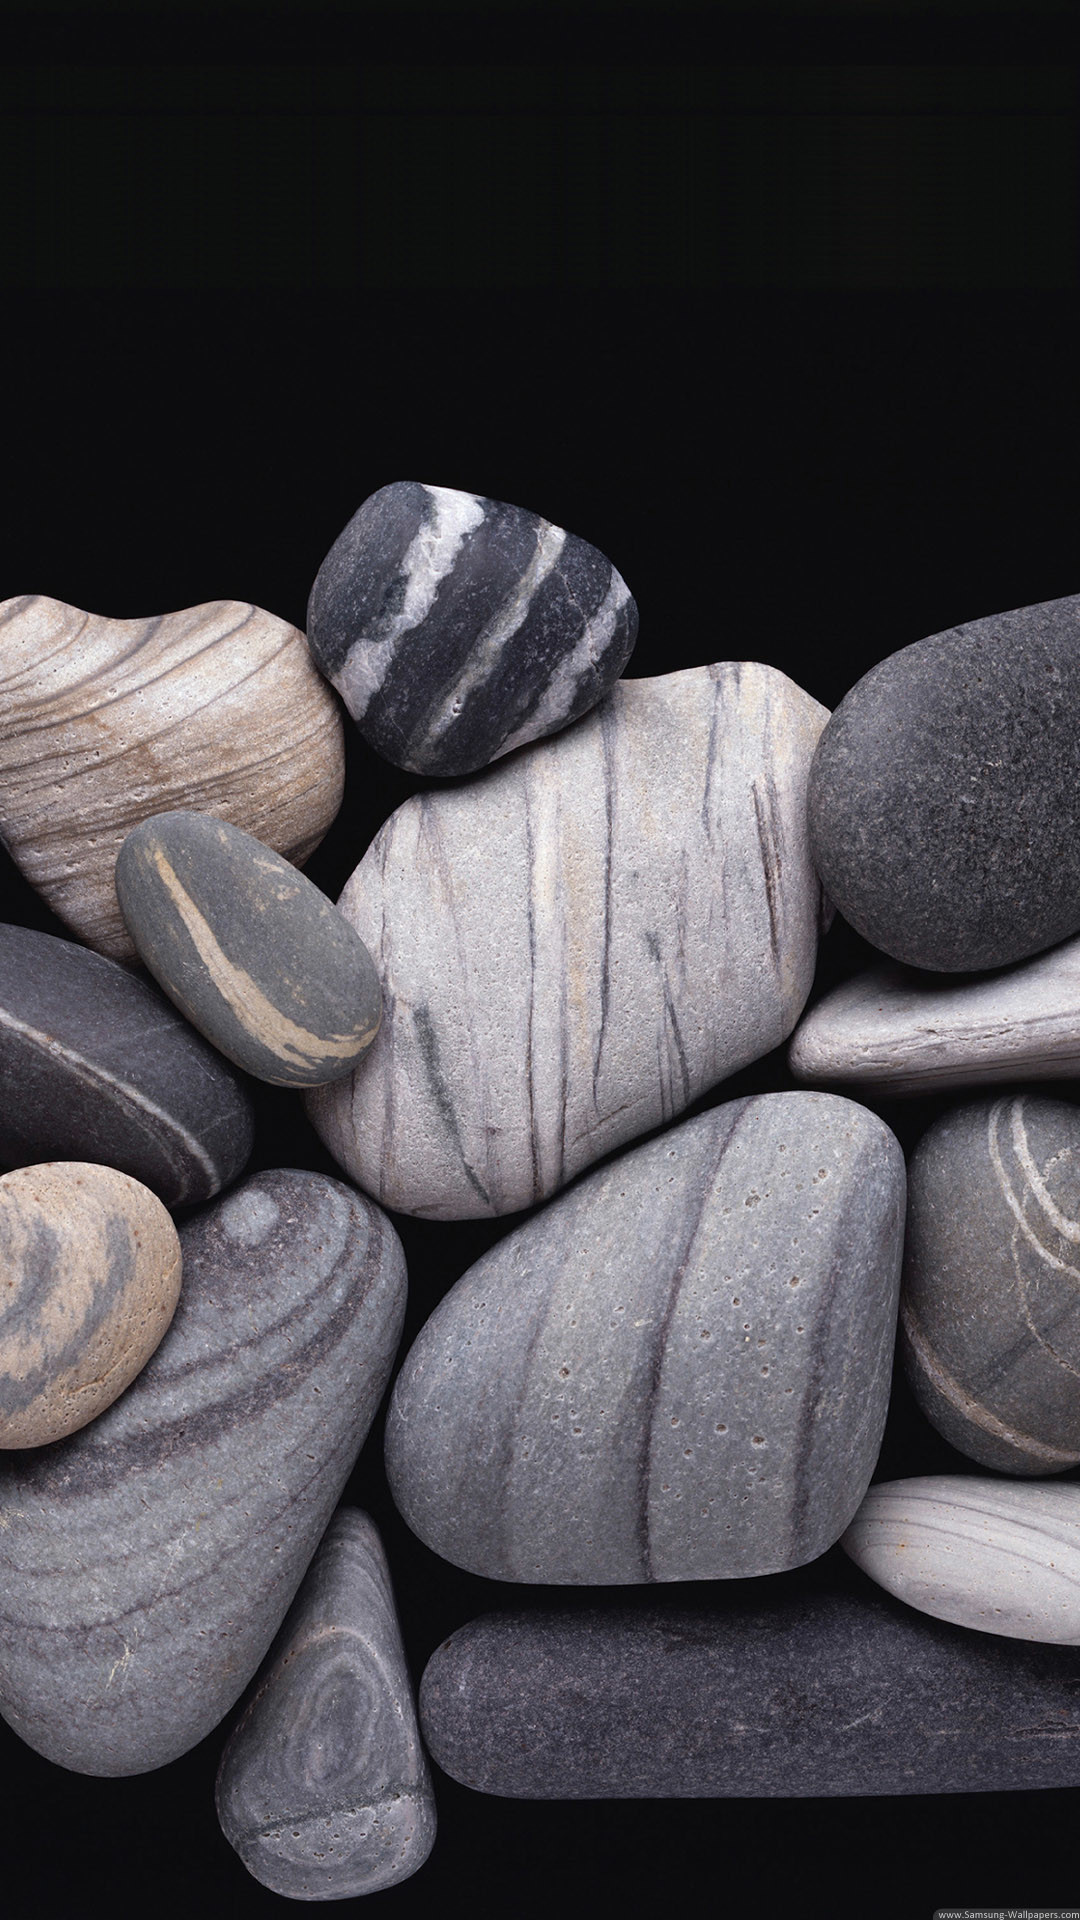 1080x1920 Grey Pebbles Lockscreen iPhone 6 Plus HD Wallpaper ...